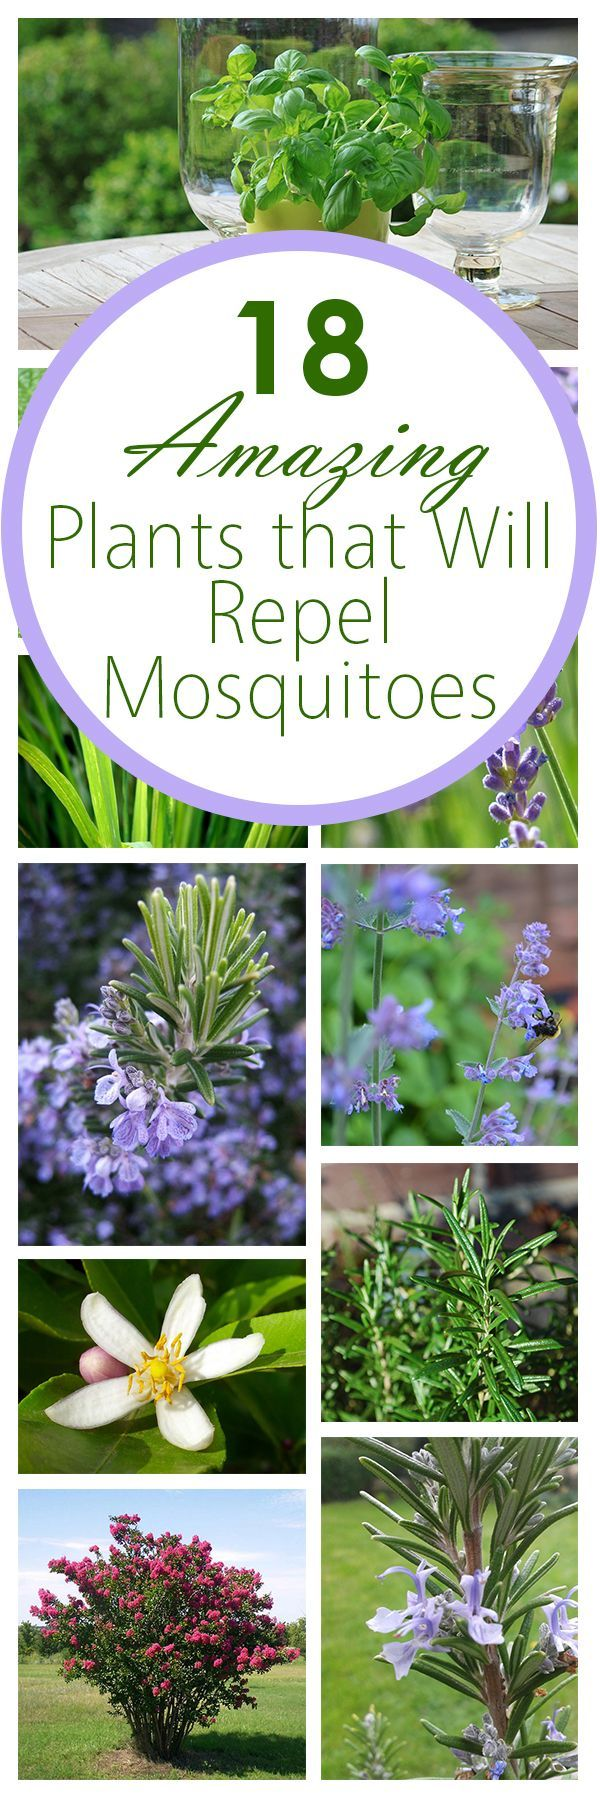 Basil Basil not only gets rid of mosquitos, but it also has lots of other qualities and uses as well! If you want, you can extract the basil oils and turn them into a spray for an even more effective mosquito repellent.